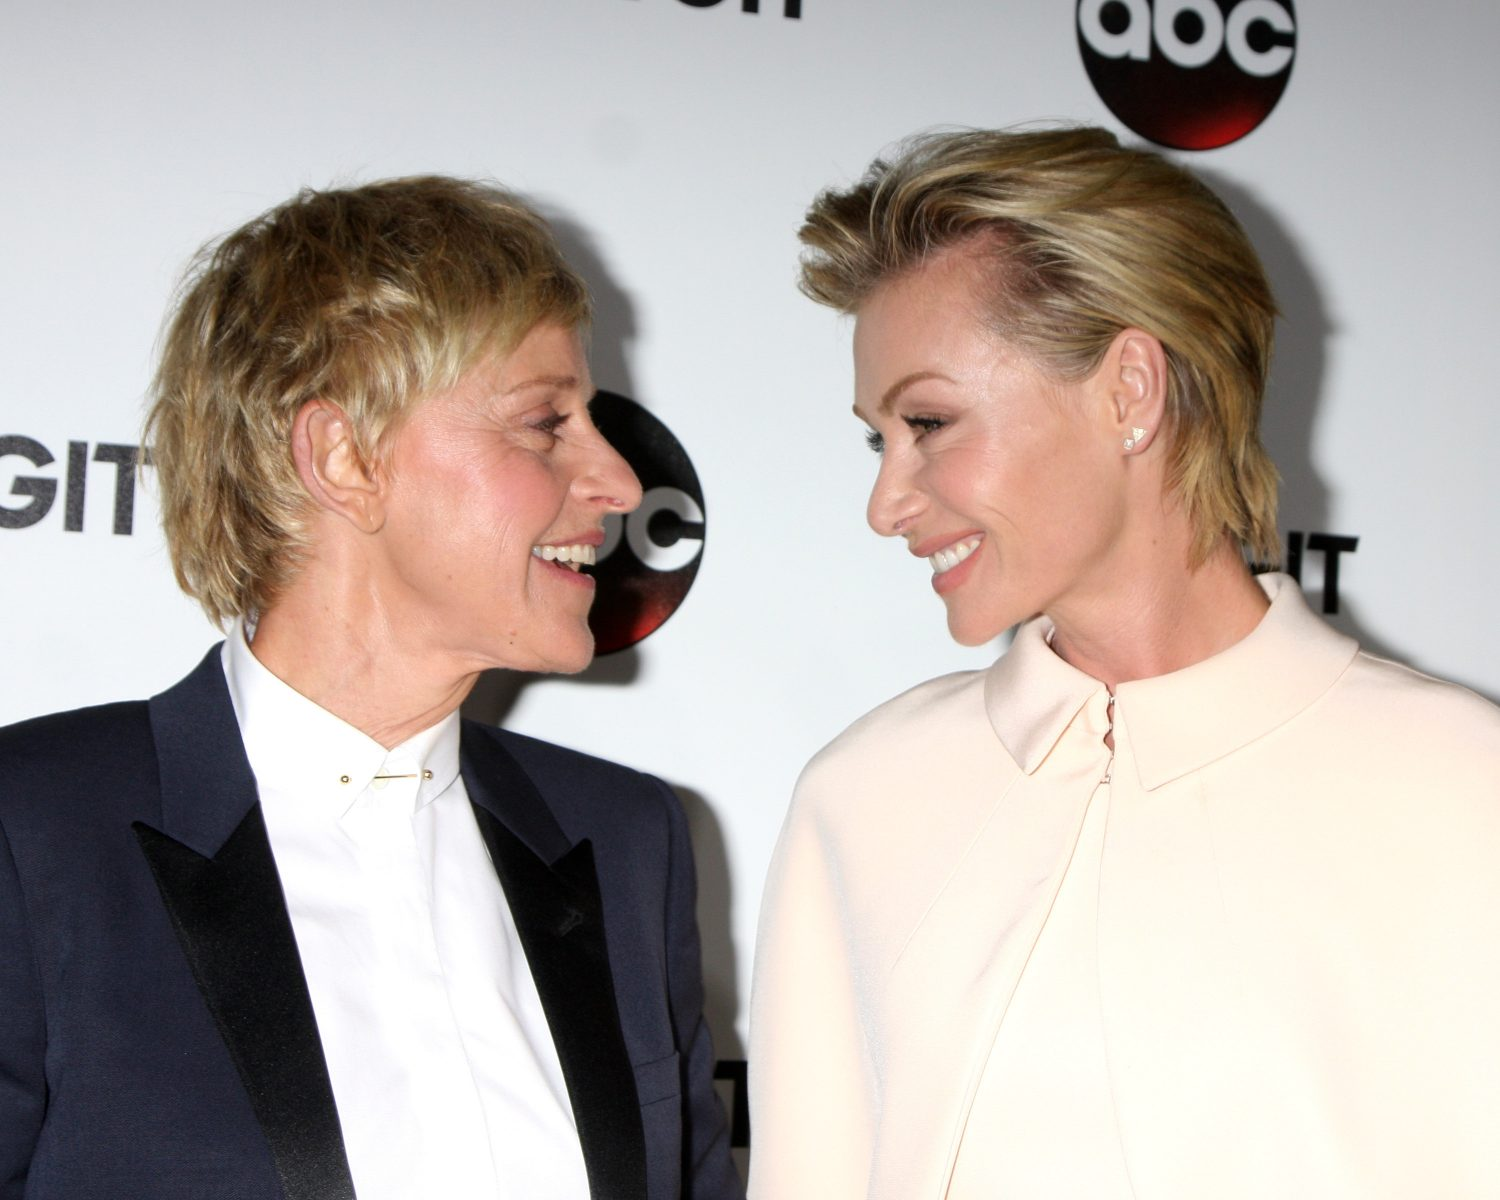 Ellen DeGeneres And Portia De Rossi Marked Their 9th Wedding Anniversary  With Sweet Messagesu2014see The Photo Here. (Shutterstock.com)